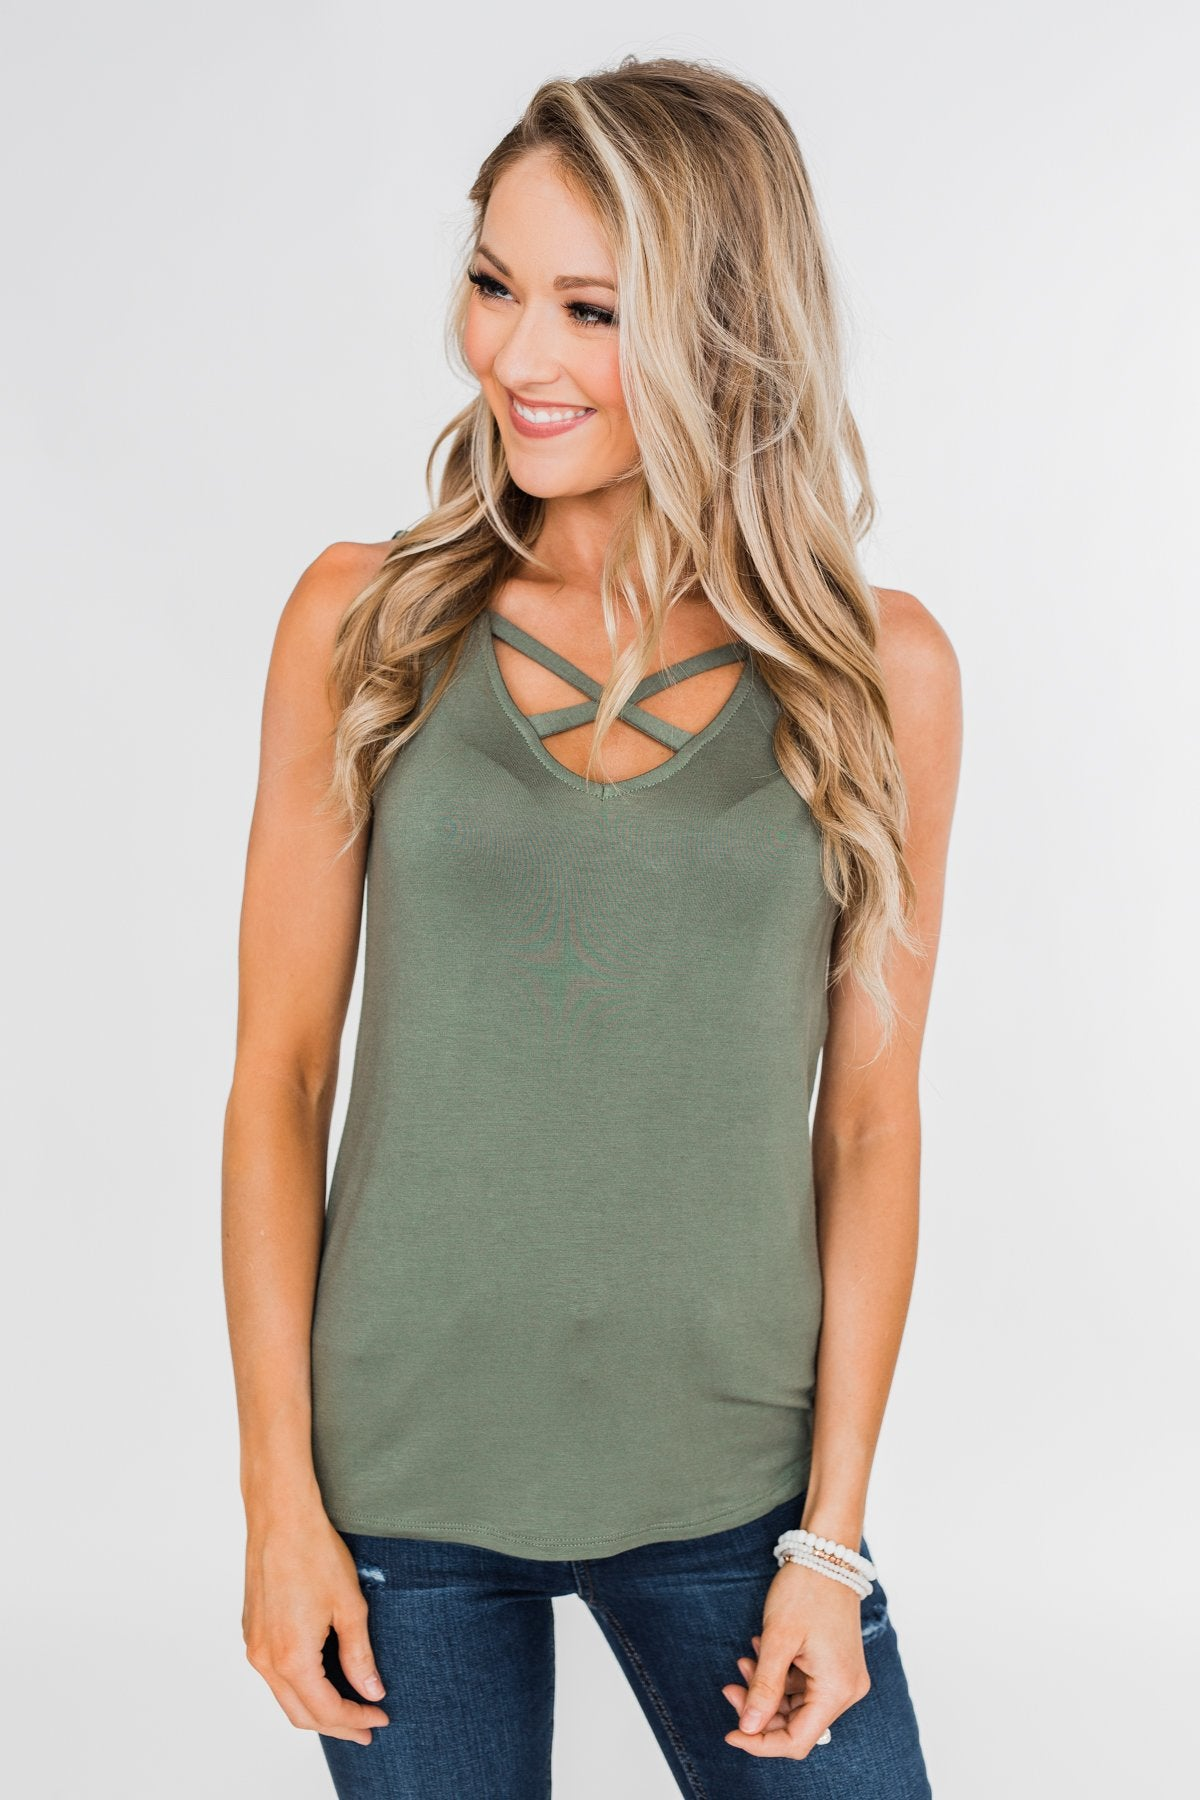 Places to Go Criss Cross Tank Top- Olive